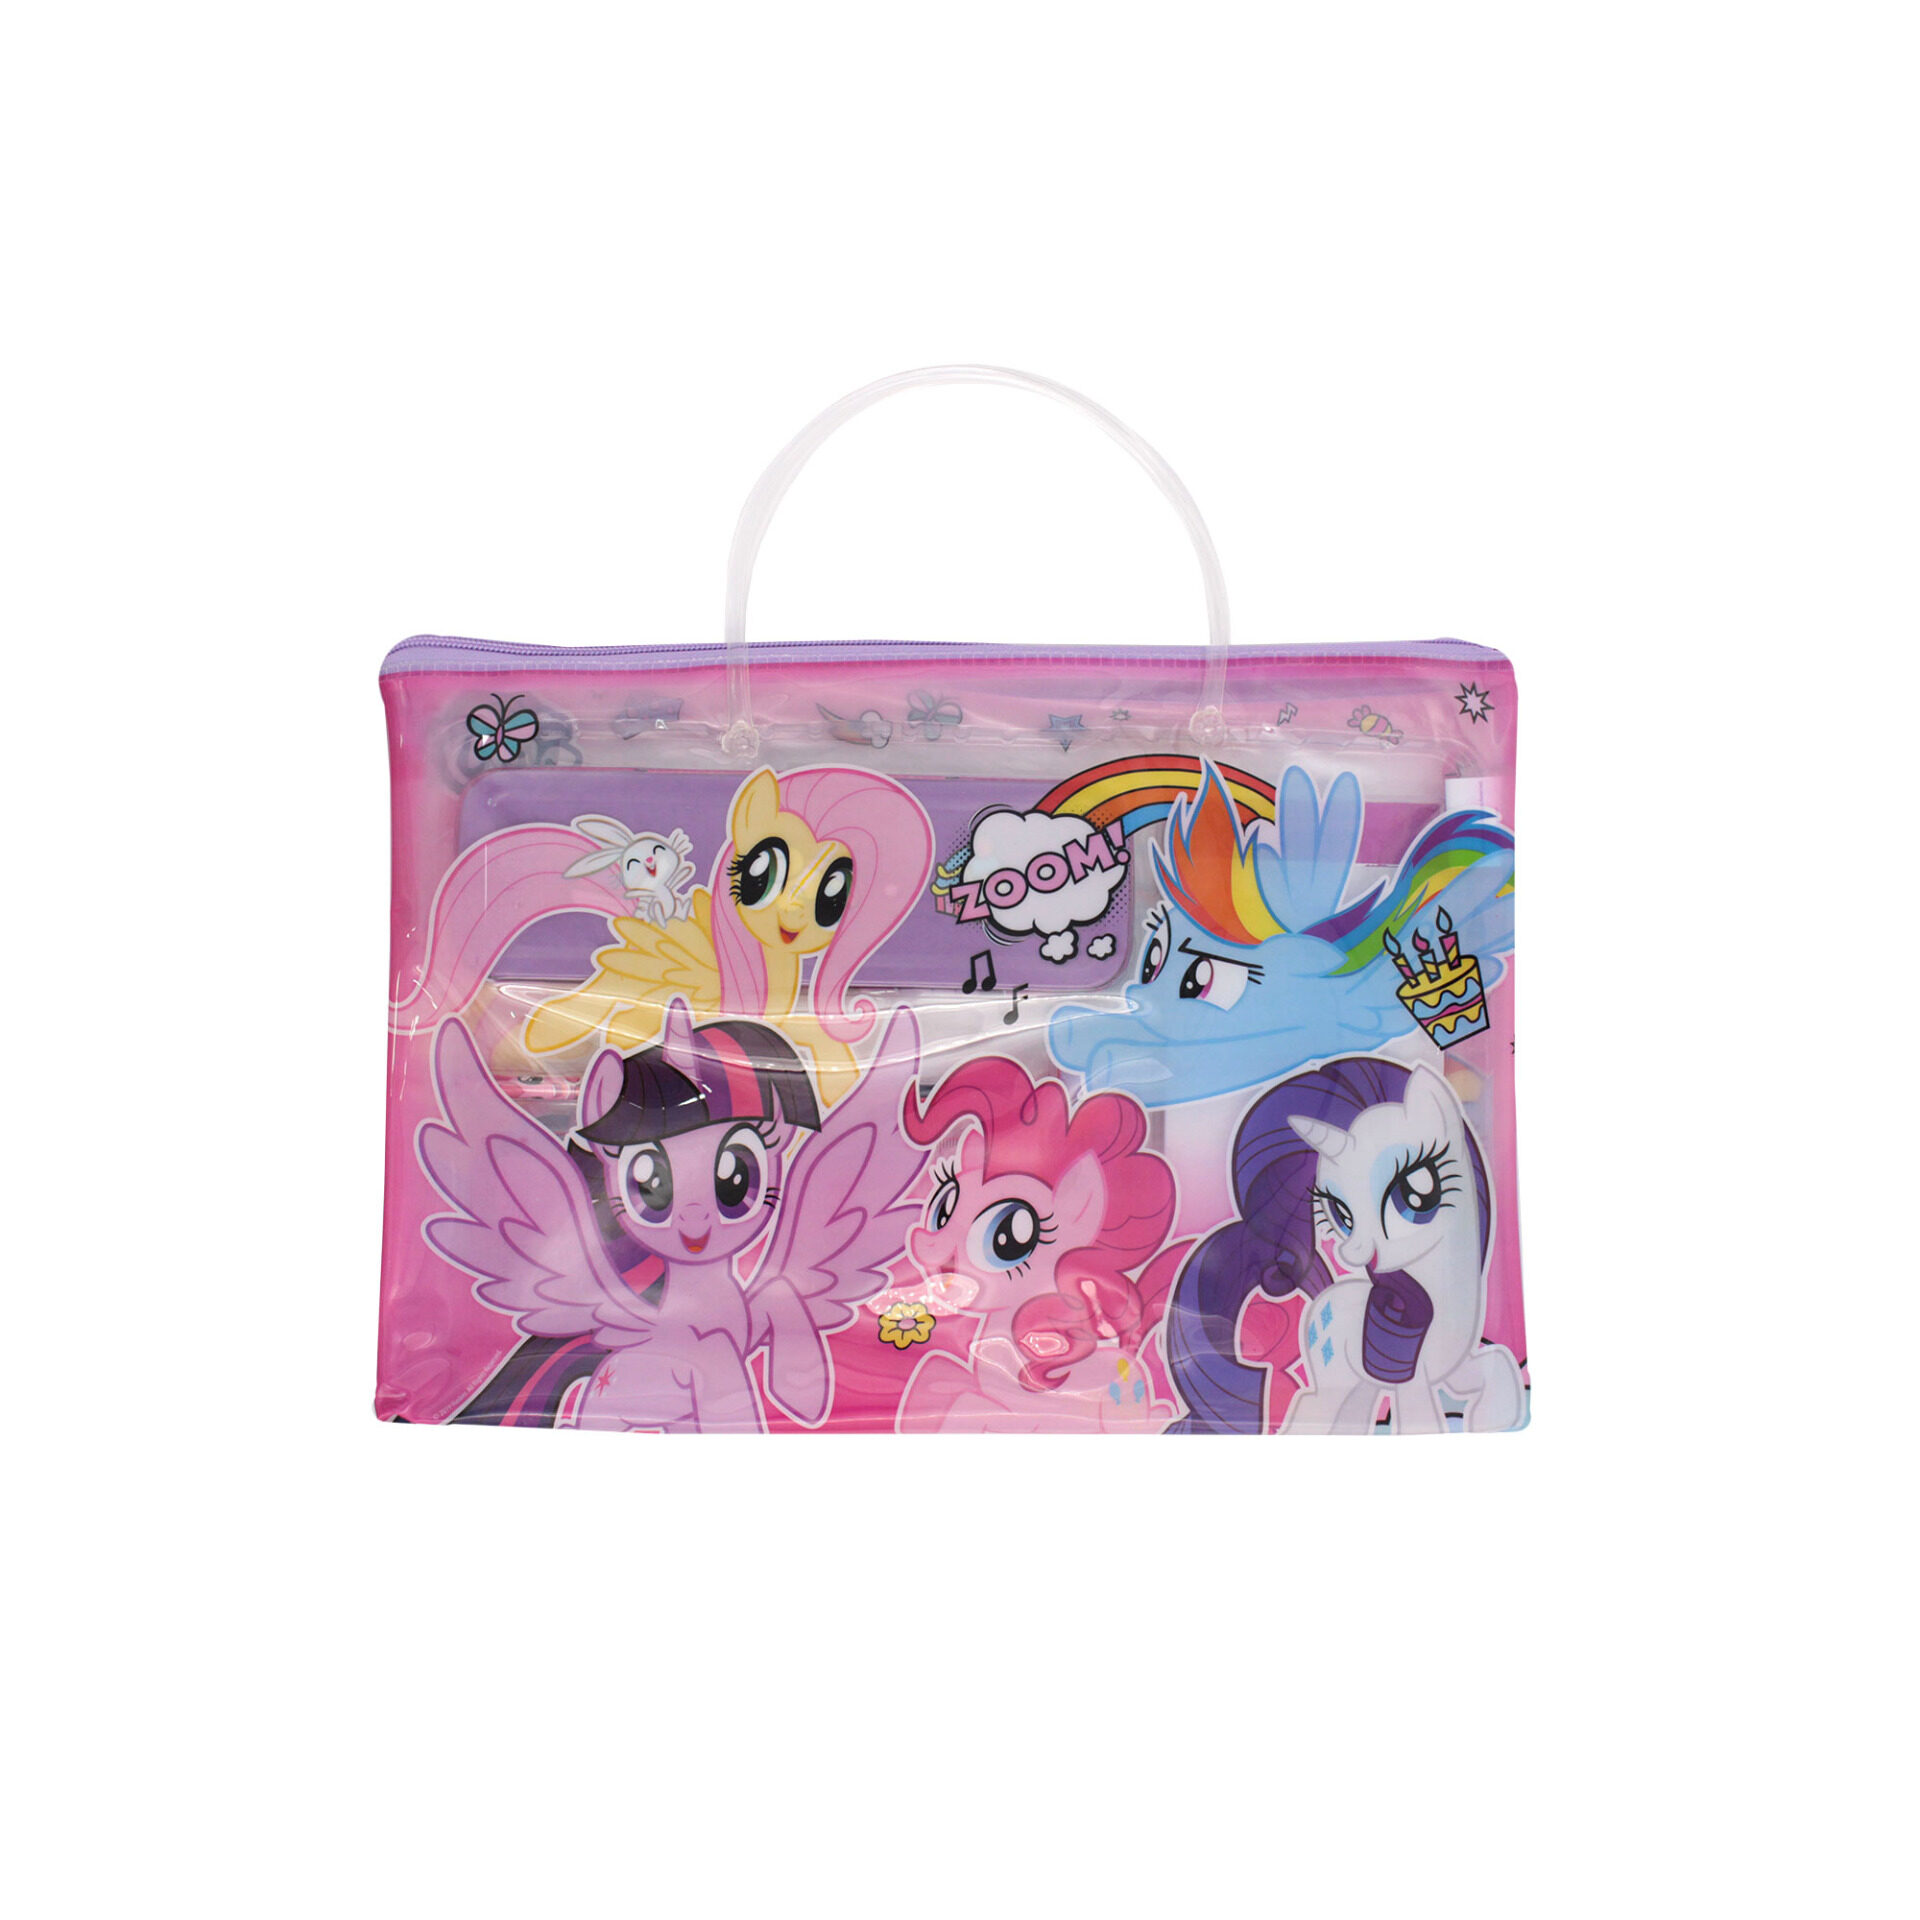 My Little Pony Ville 6 in 1 Stationery Set With Pencil Case, Pencil, Eraser, Ruler, Sharperner, Notepad (Girls)